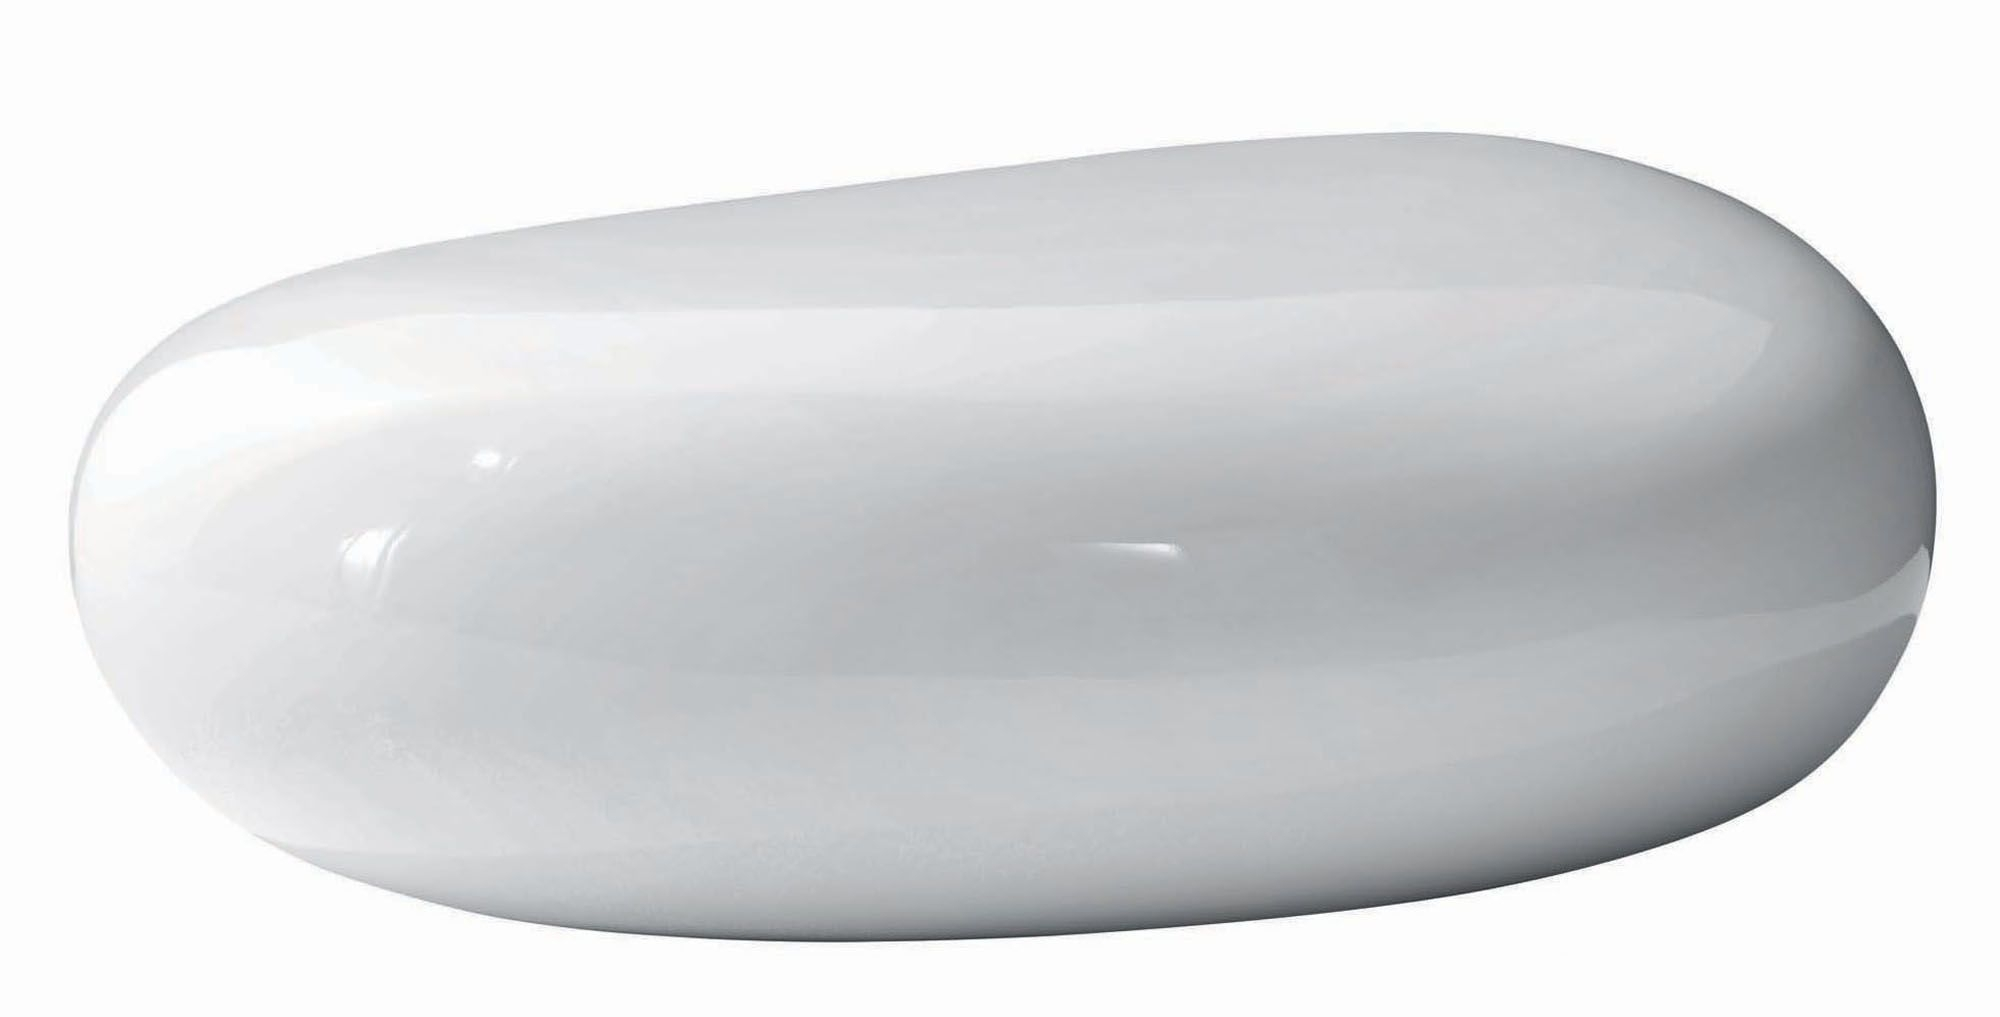 1. White Jelly Bean Coffee Table. 2. Smooth White Stone Coffee Table with regard to Jelly Bean Coffee Tables (Image 1 of 30)